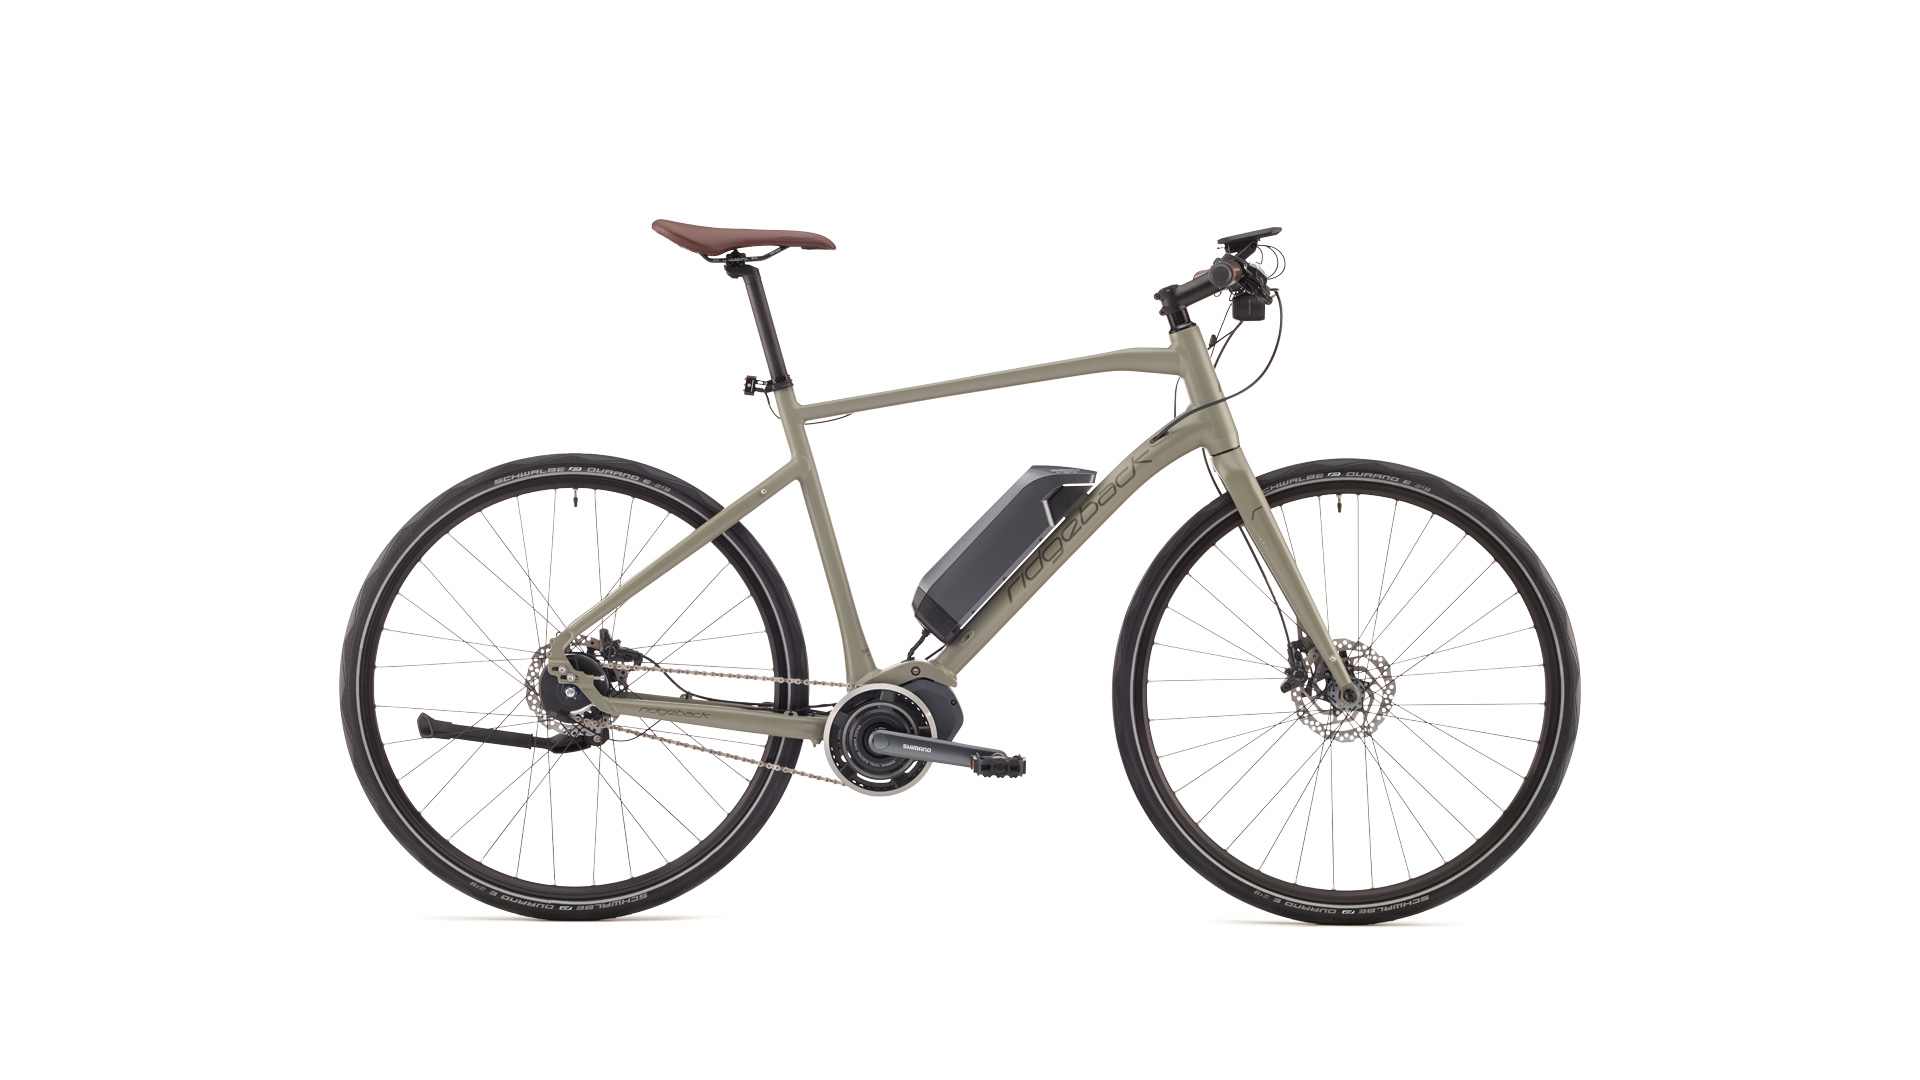 b85b5beffed BikeBase | Buy Ridgeback E-Flight Di2 online at UK shop